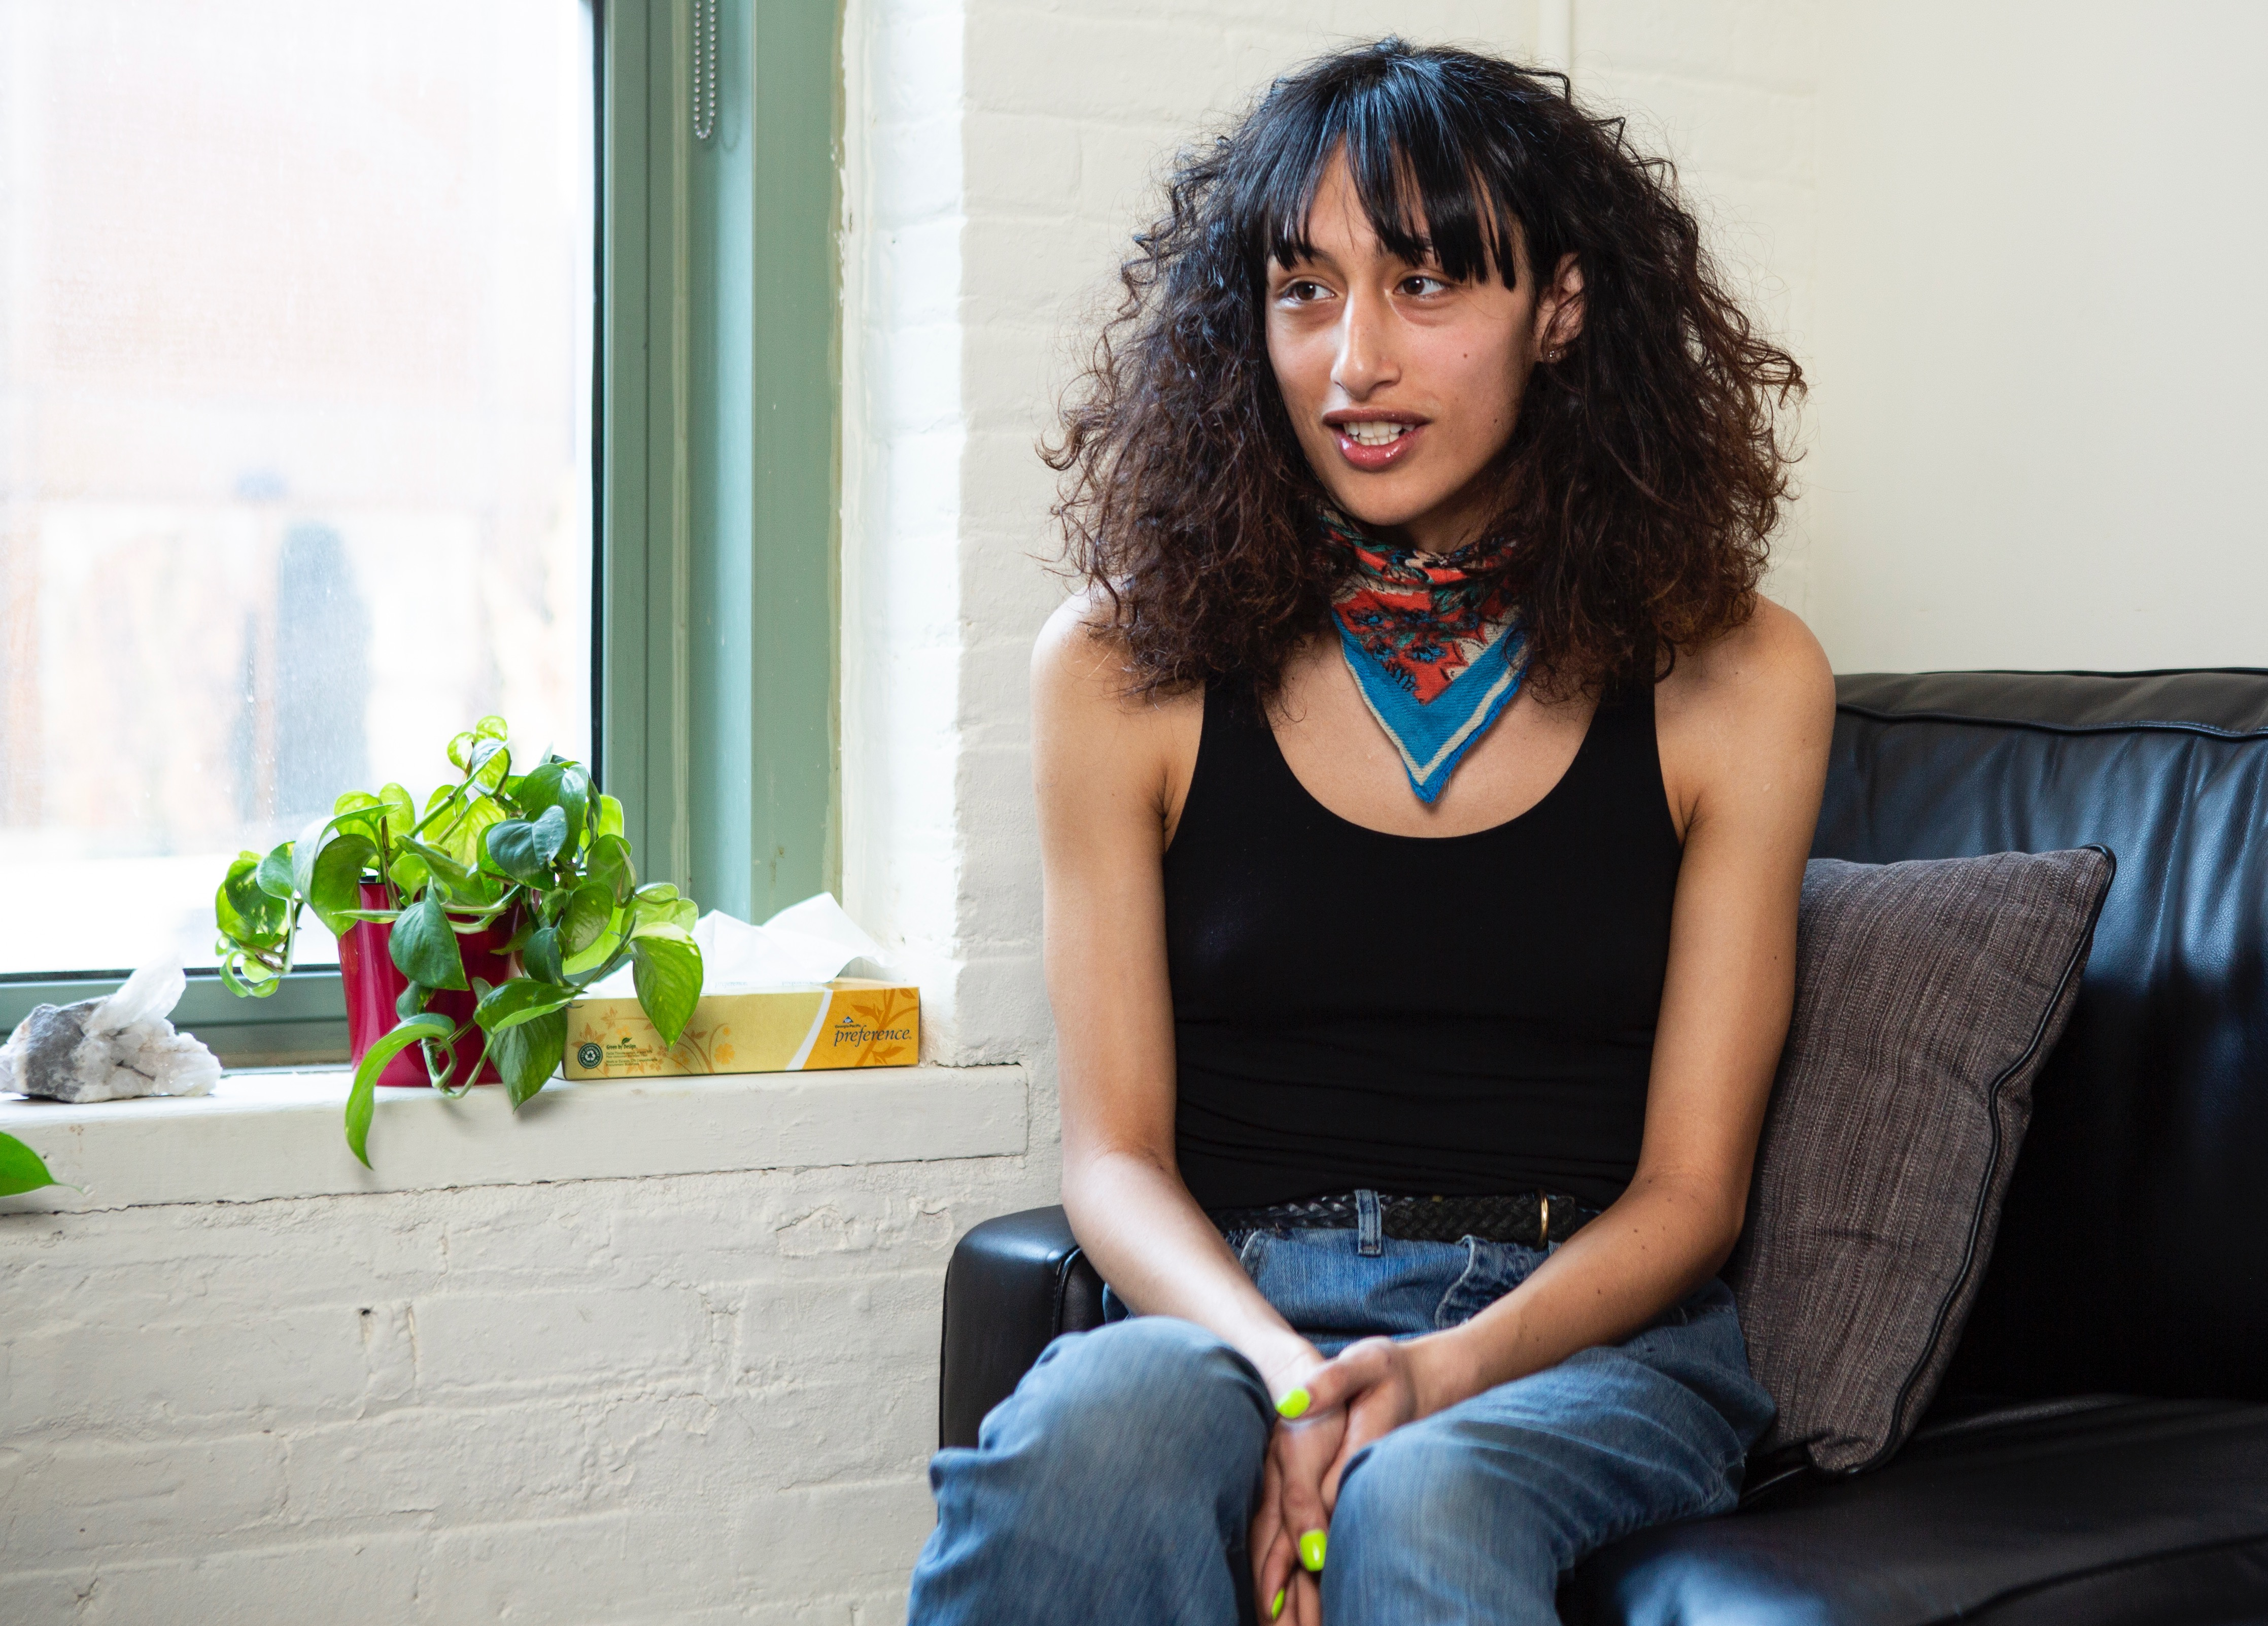 A transgender woman sitting on a therapist's couch and smiling